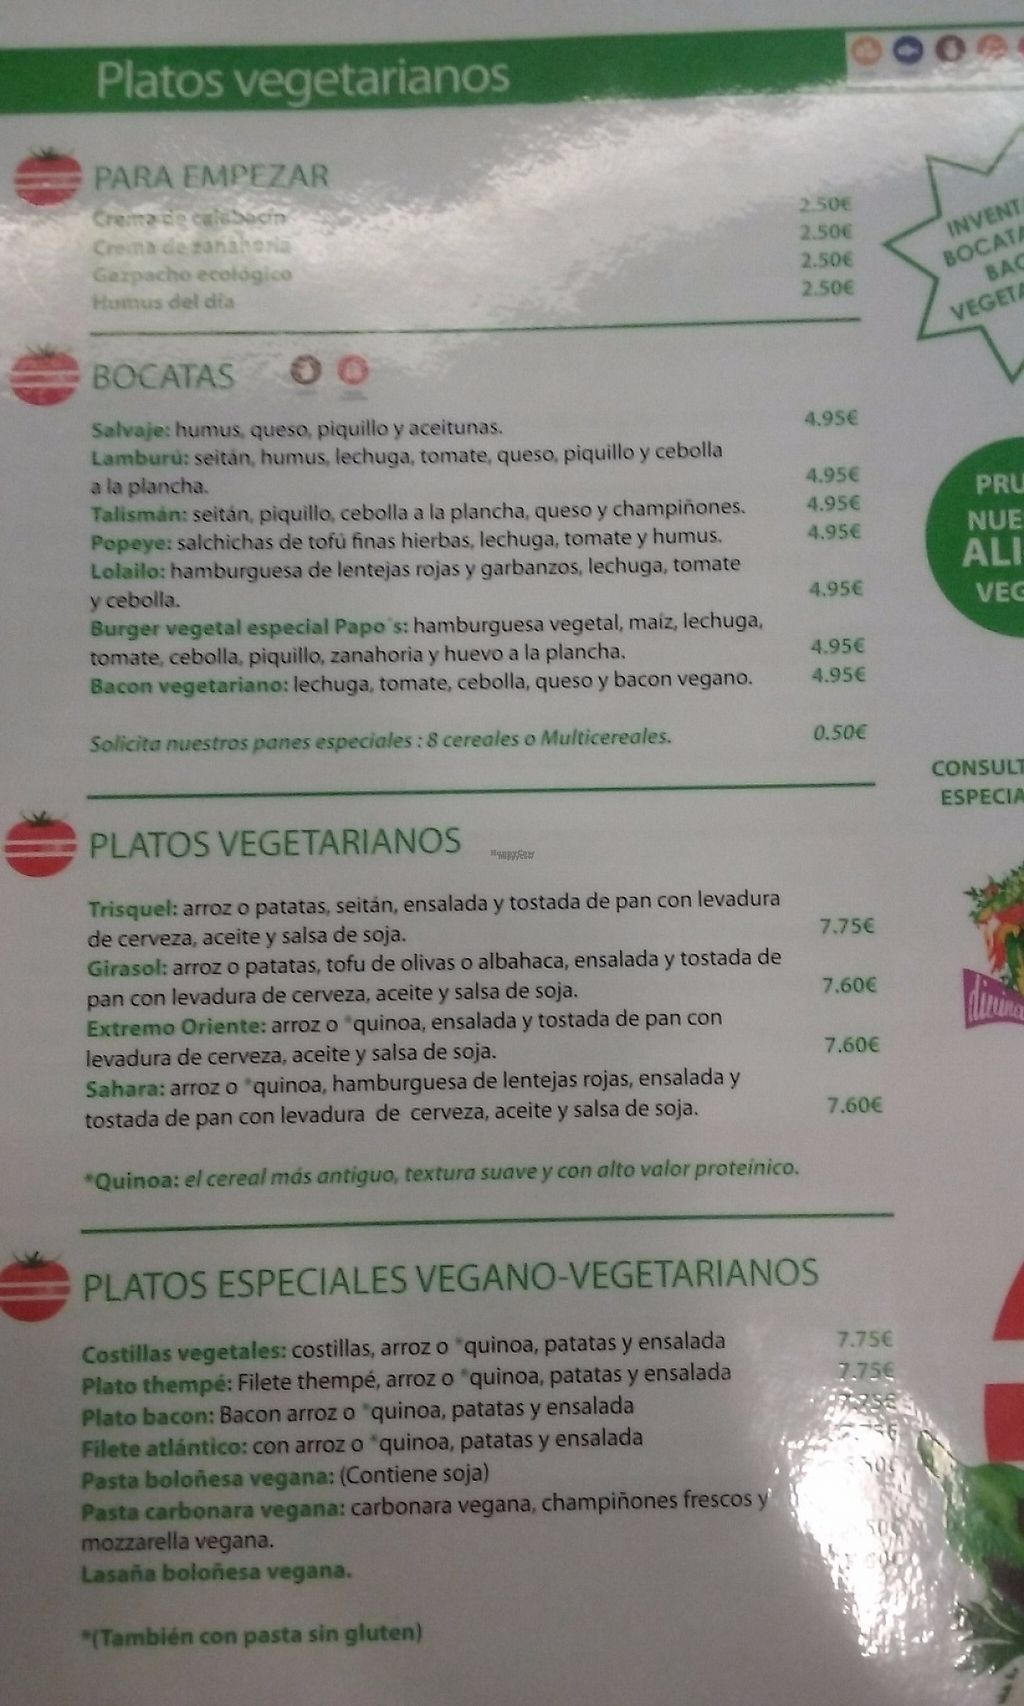 """Photo of Papo's  by <a href=""""/members/profile/Ceresmar"""">Ceresmar</a> <br/>Part of the veg menu <br/> March 26, 2017  - <a href='/contact/abuse/image/89305/241613'>Report</a>"""